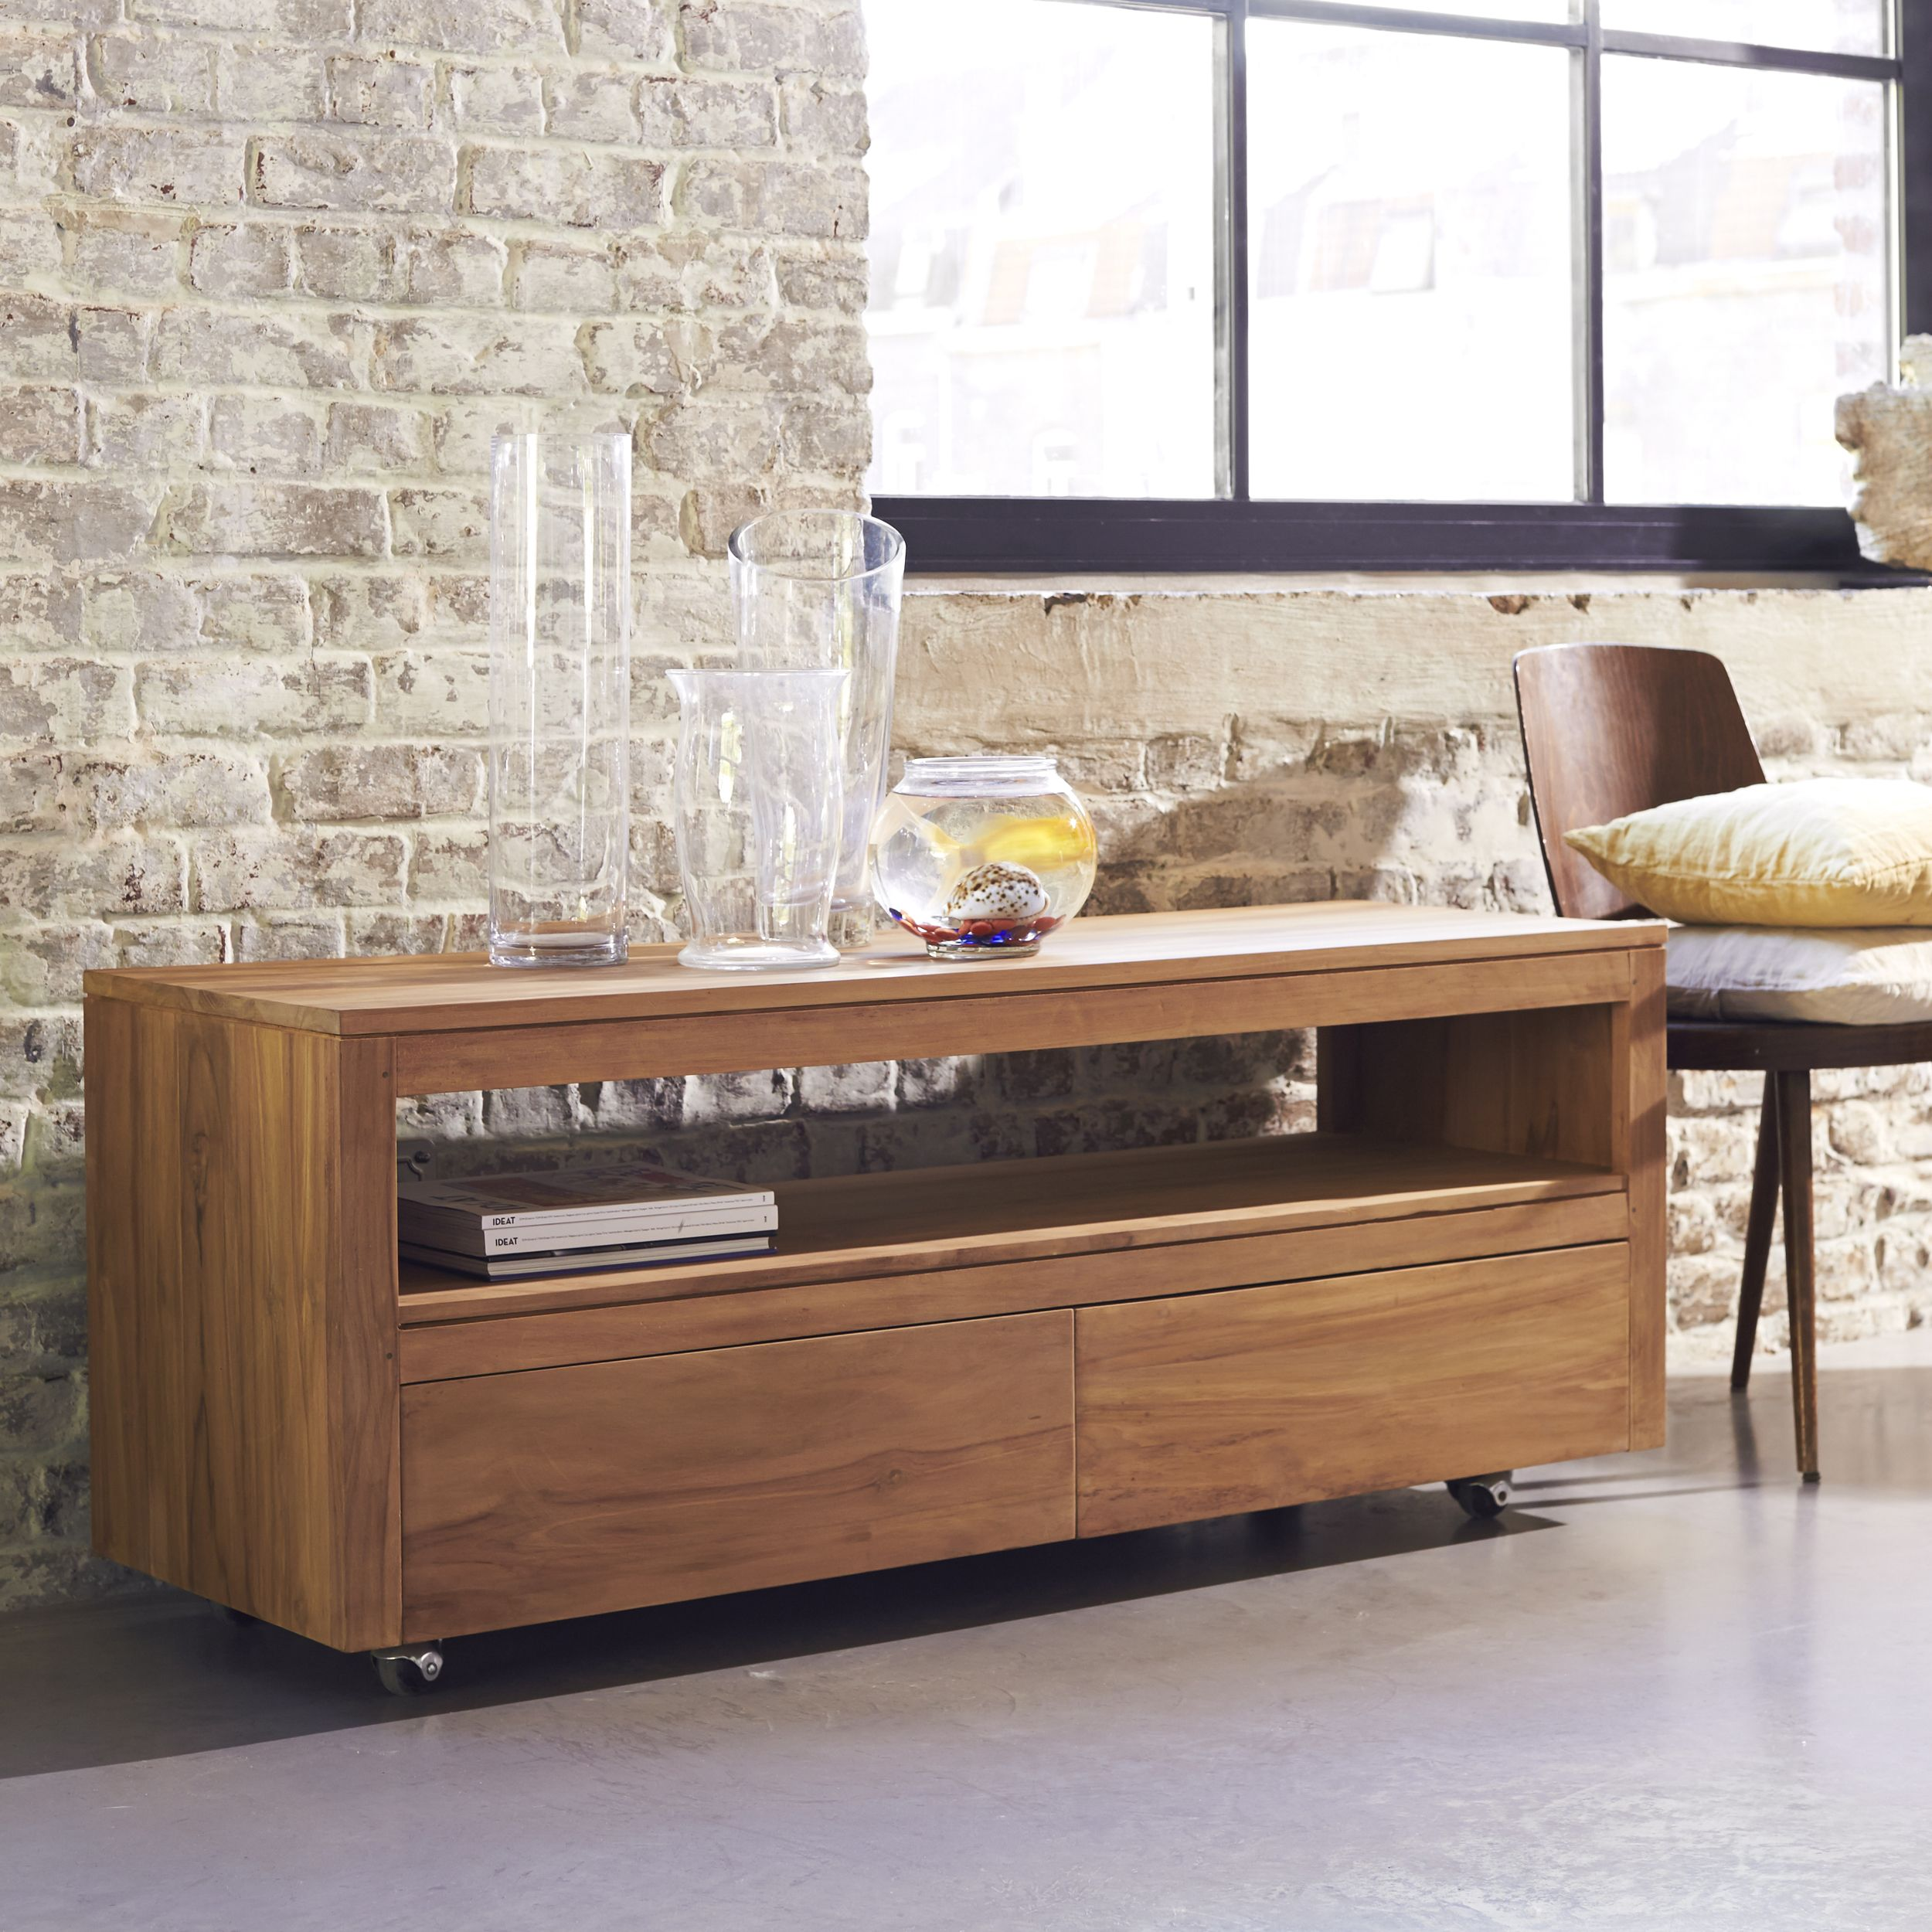 Anoa Teak Tv Stand 140 At Home Furniture Store Tv Stand Wood Home Furniture